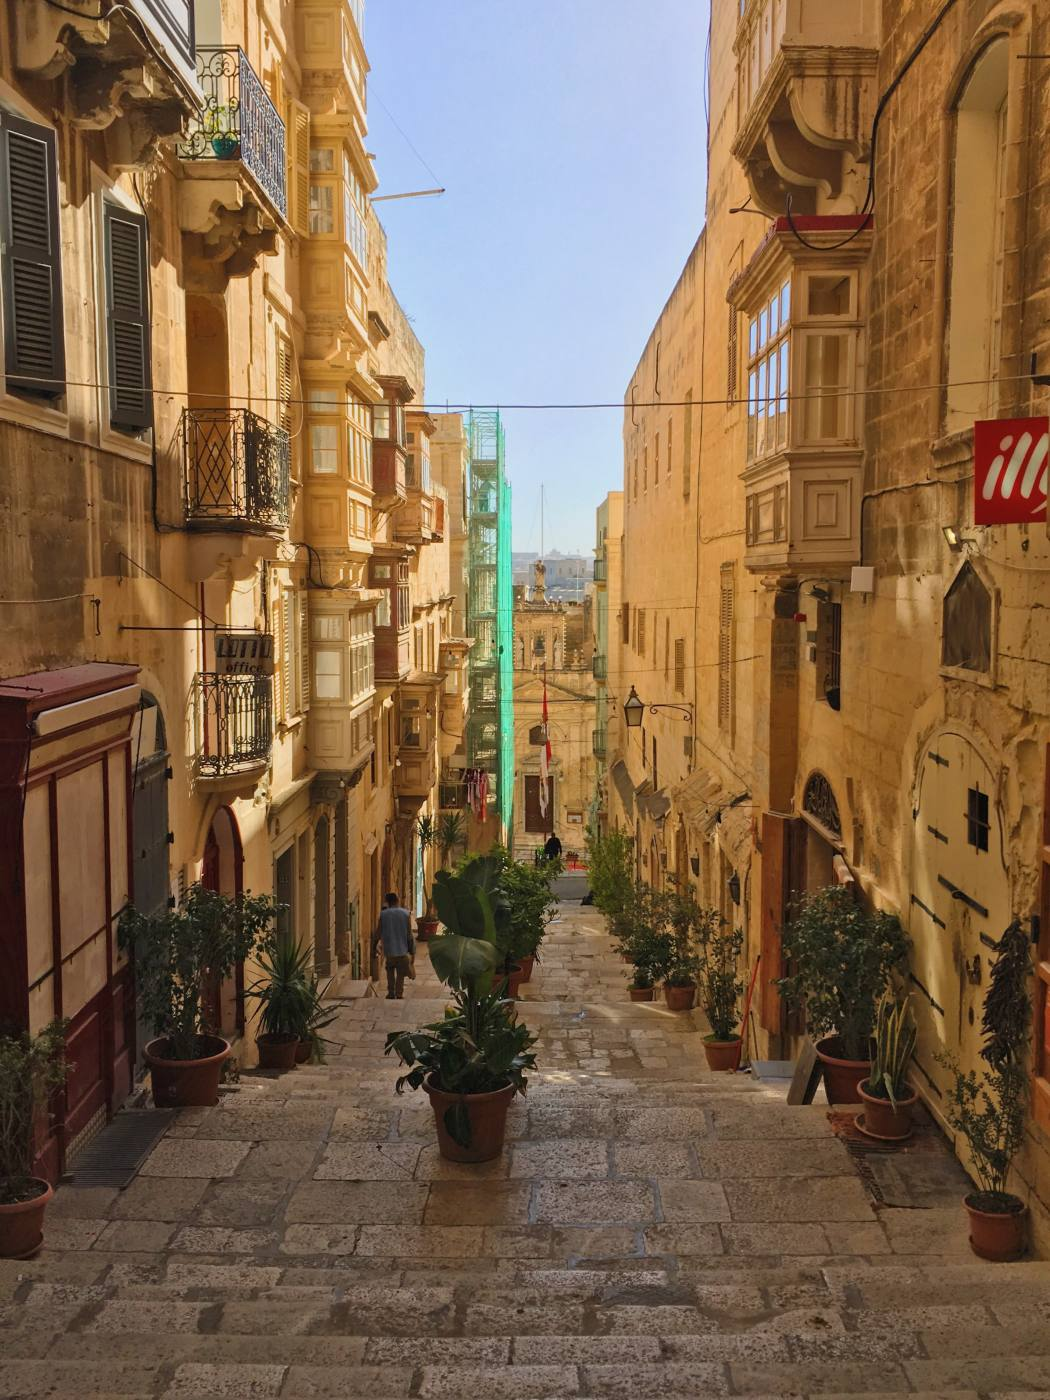 13 Photos That Might Just Inspire You to Visit Malta